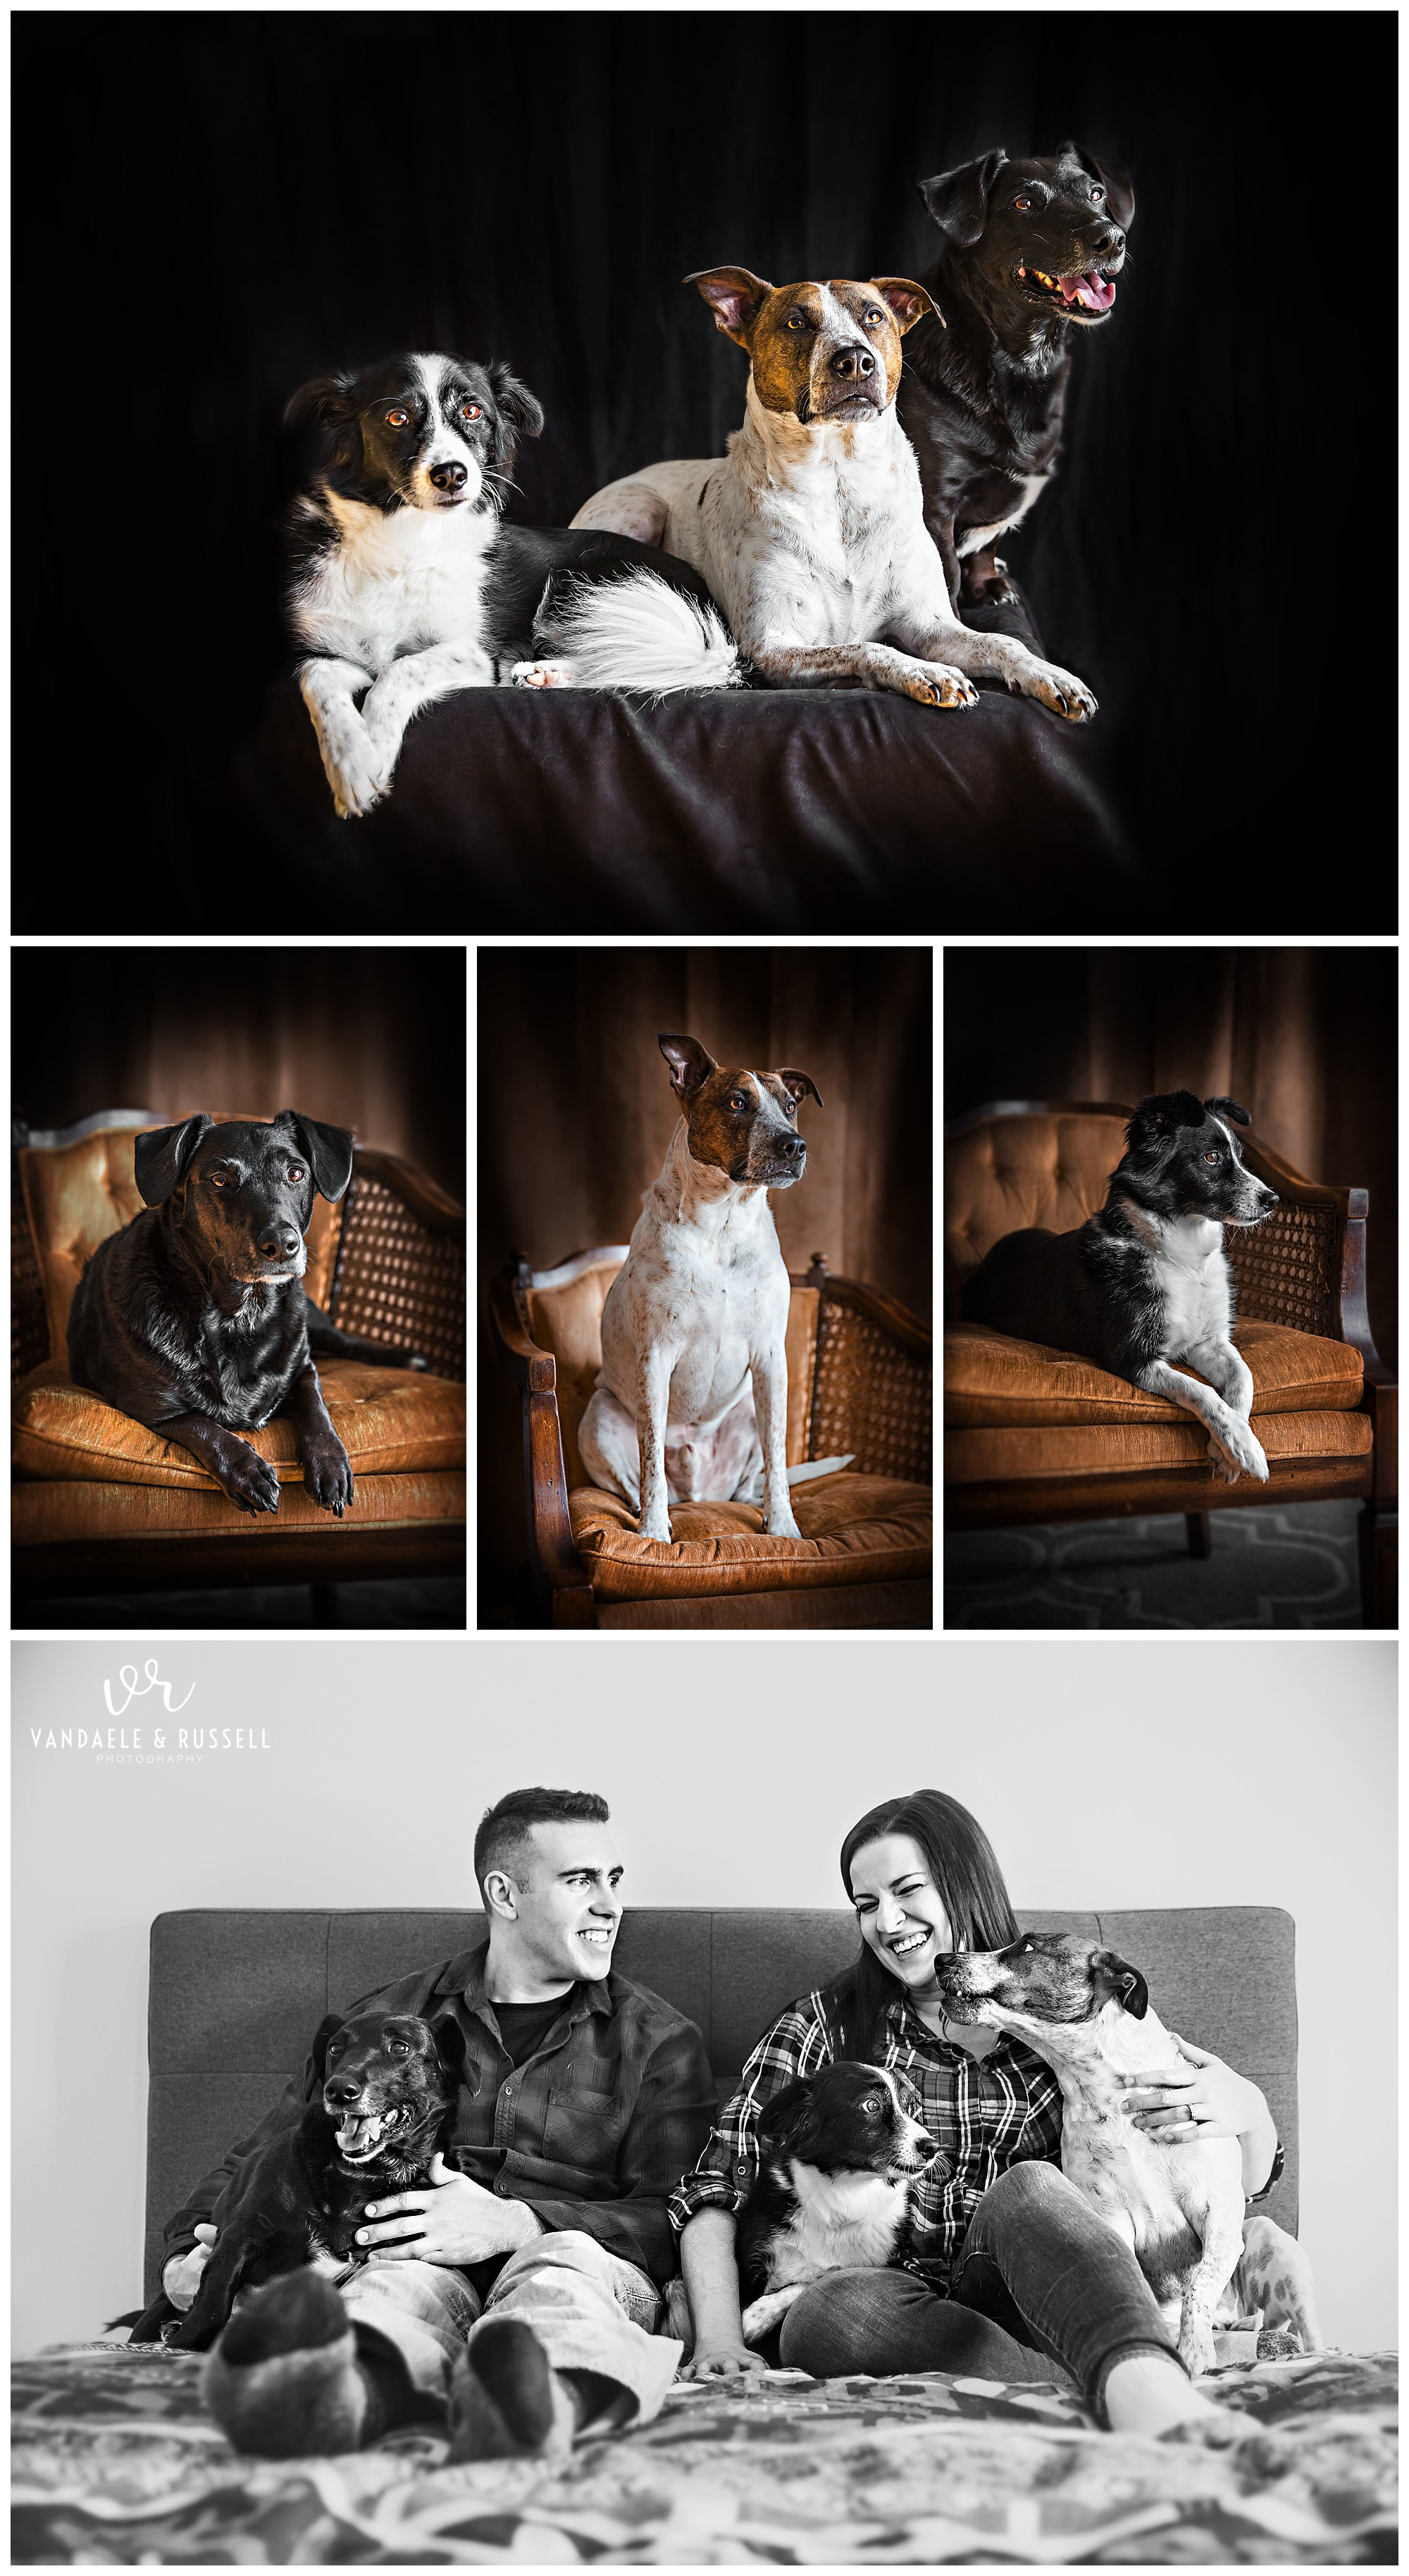 Baden, Ontario family & dog photography by VanDaele & Russell